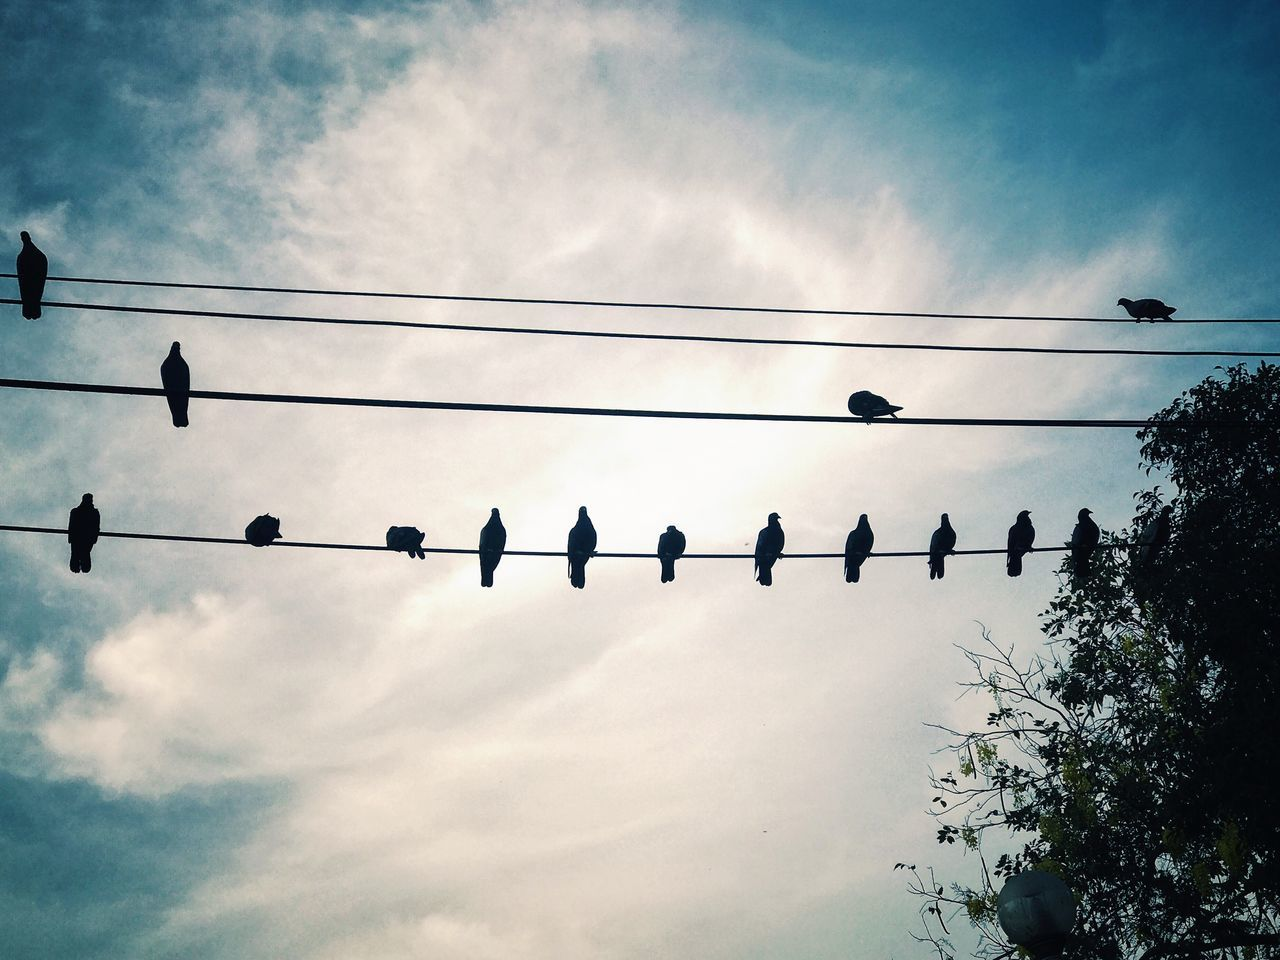 Low Angle View Sky Cloud - Sky Bird Cable Flying Power Line  No People Outdoors Day Animal Themes Power Supply Large Group Of Animals Animals In The Wild Nature Silhouette Tree Flock Of Birds Taken By IPhone 7 Plus